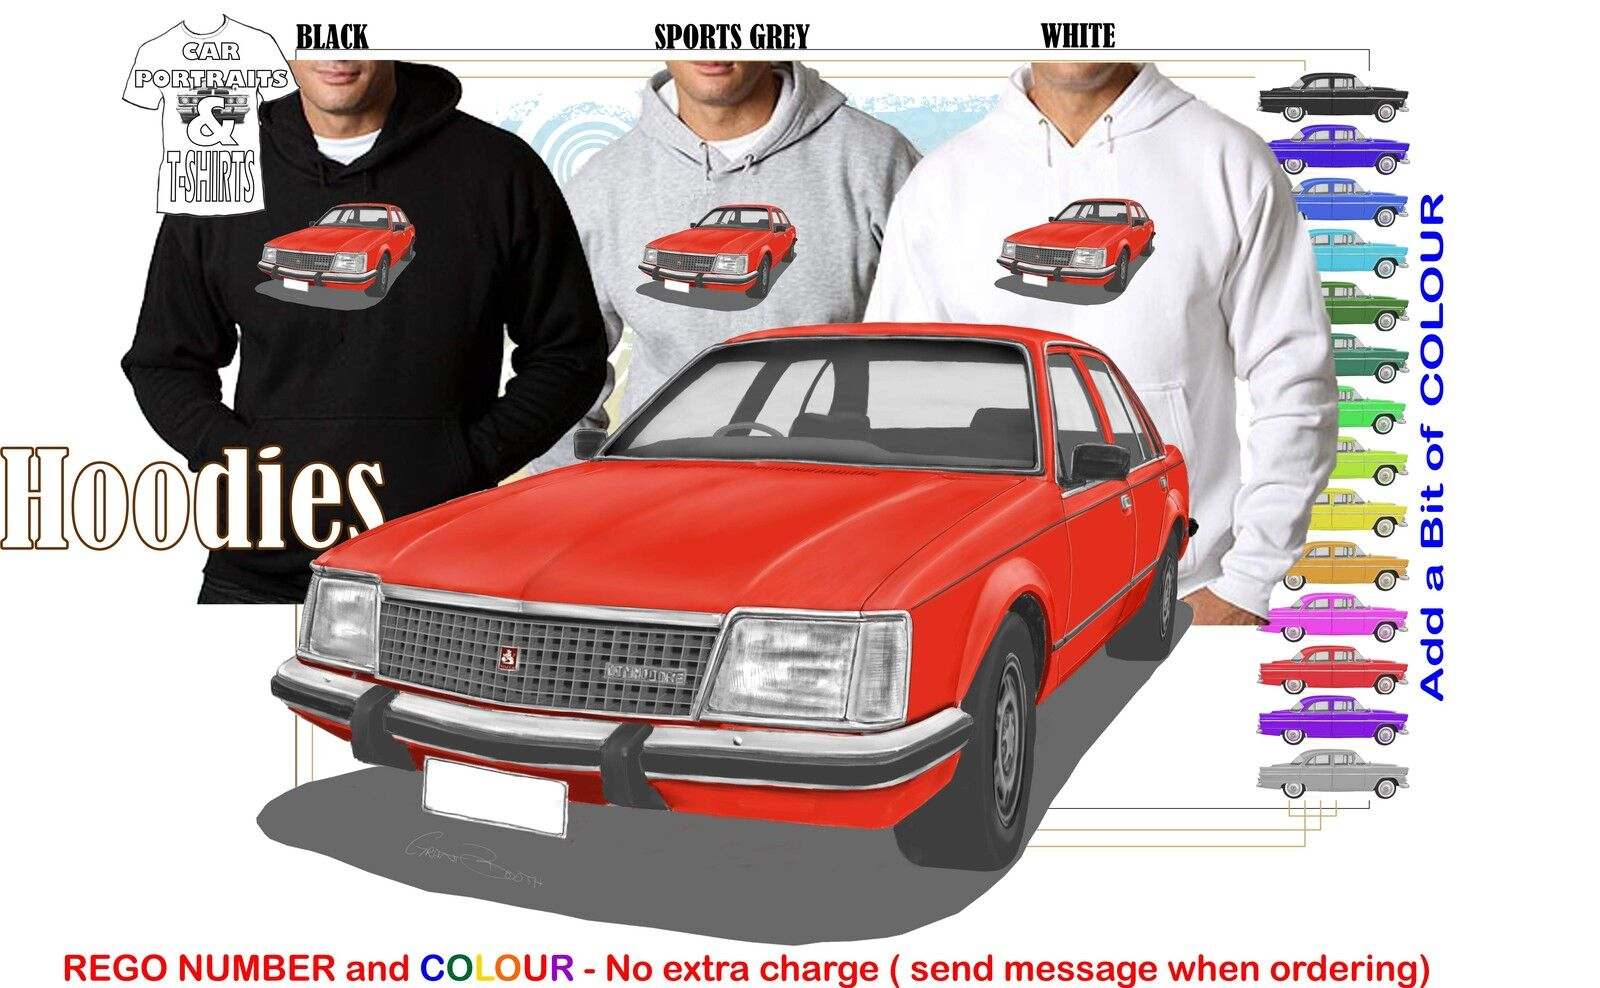 80-81 VC COMMODORE SEDAN HOODIE ILLUSTRATED CLASSIC RETRO MUSCLE SPORTS CAR